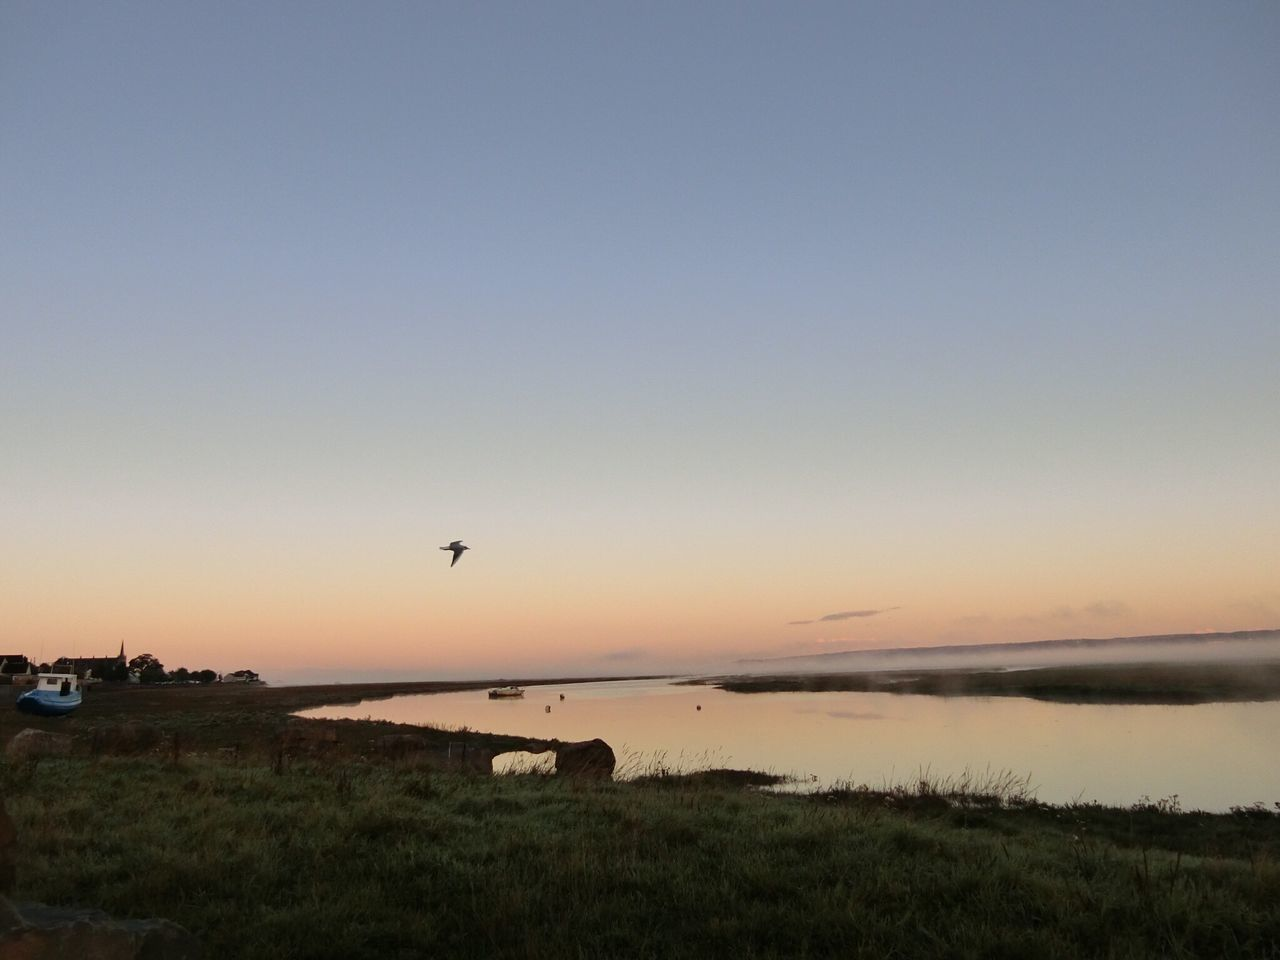 sunset, nature, beauty in nature, scenics, tranquility, animal themes, outdoors, grass, sky, tranquil scene, no people, clear sky, field, animals in the wild, bird, flying, landscape, water, day